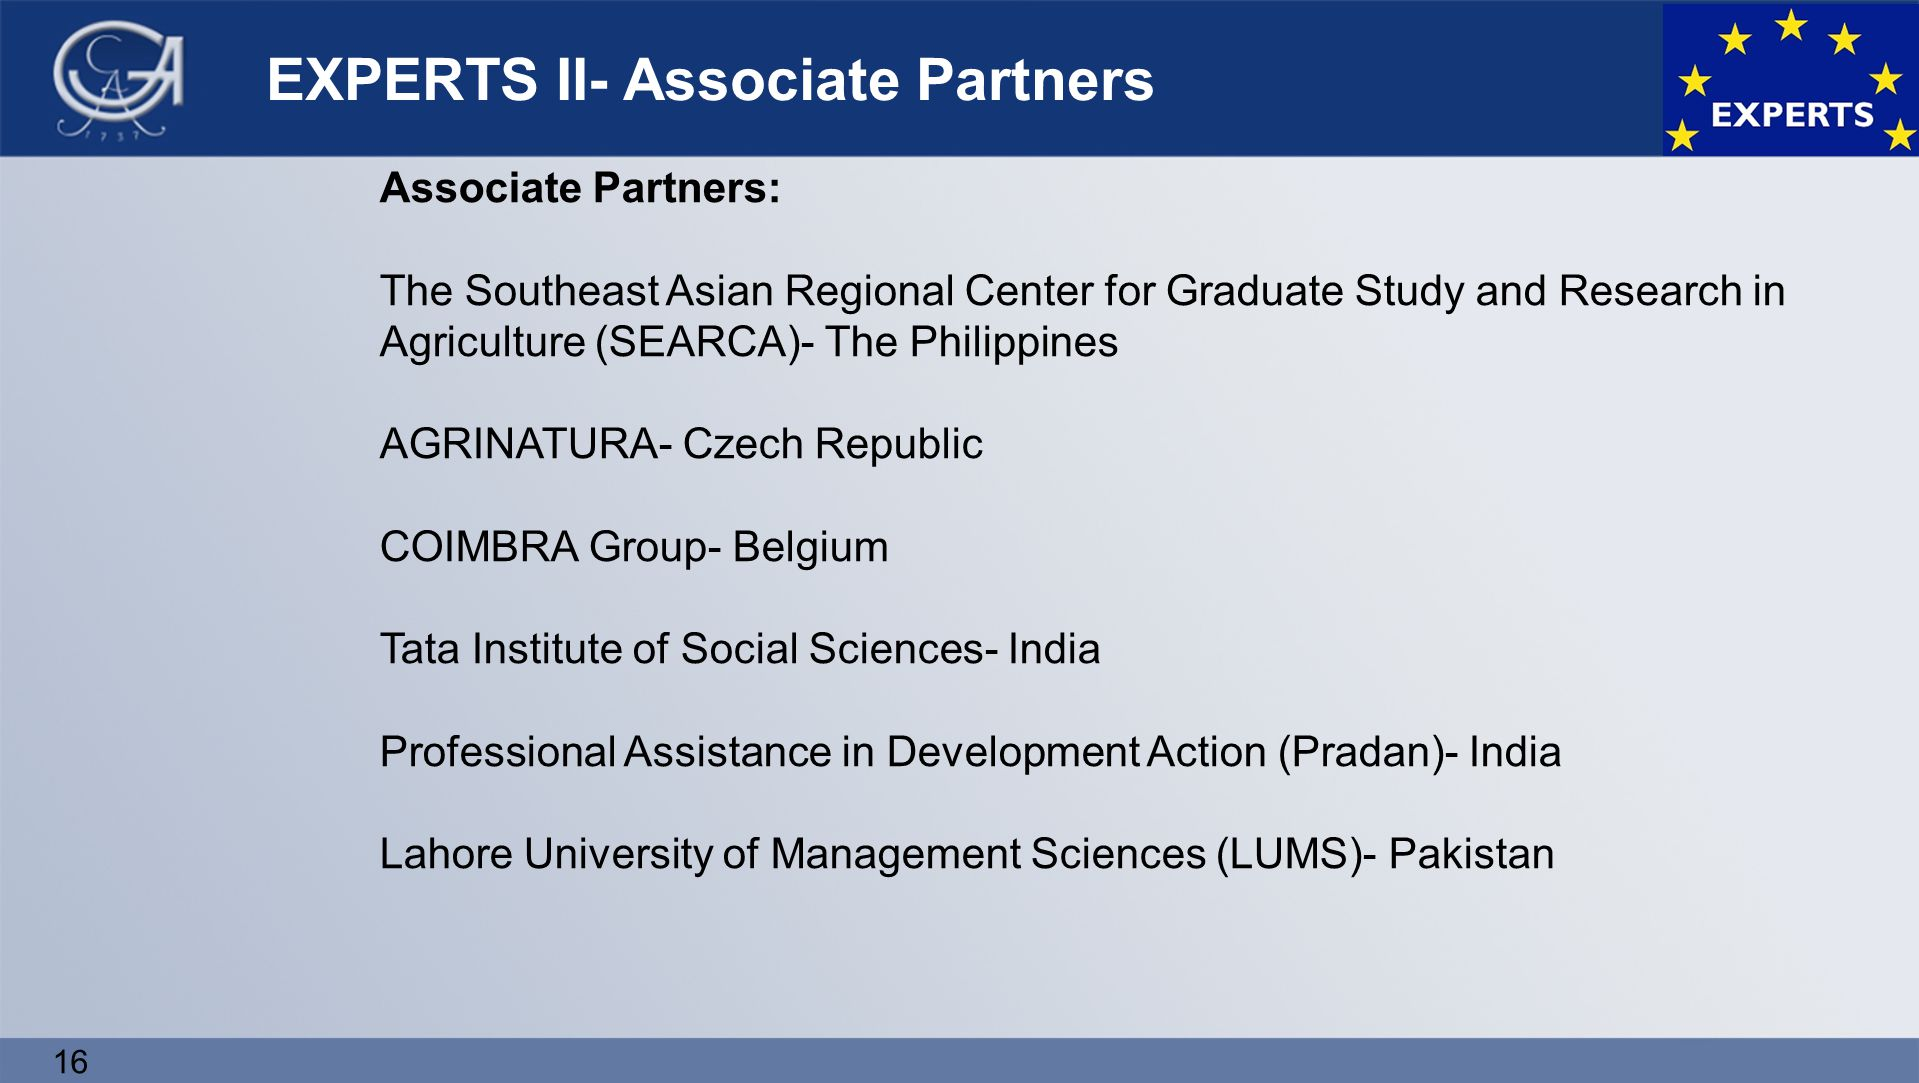 16 EXPERTS II- Associate Partners Associate Partners: The Southeast Asian Regional Center for Graduate Study and Research in Agriculture (SEARCA)- The Philippines AGRINATURA- Czech Republic COIMBRA Group- Belgium Tata Institute of Social Sciences- India Professional Assistance in Development Action (Pradan)- India Lahore University of Management Sciences (LUMS)- Pakistan